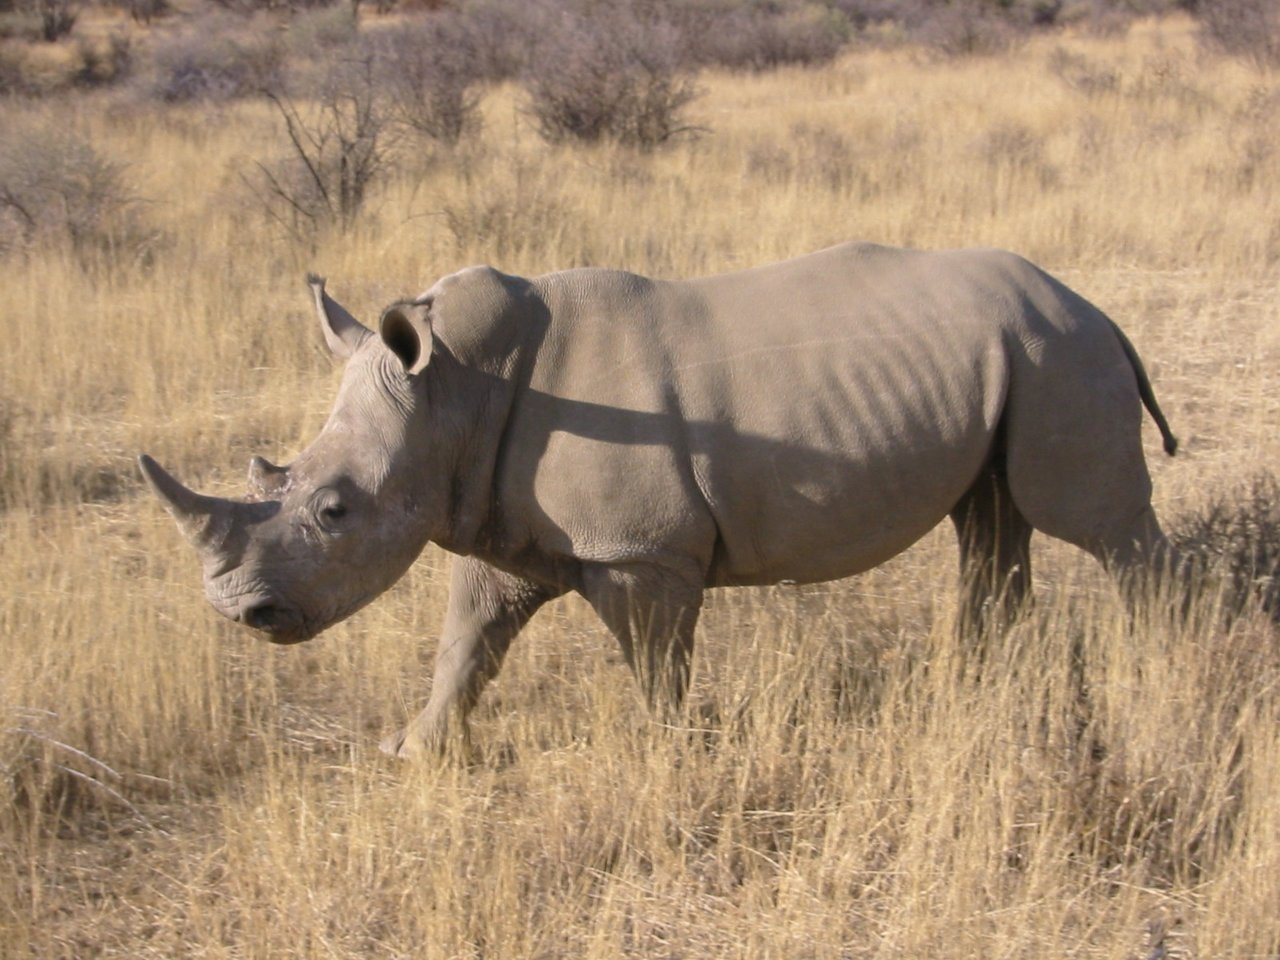 The Vietnamese Javan Rhino subspecies has 5 rhinos